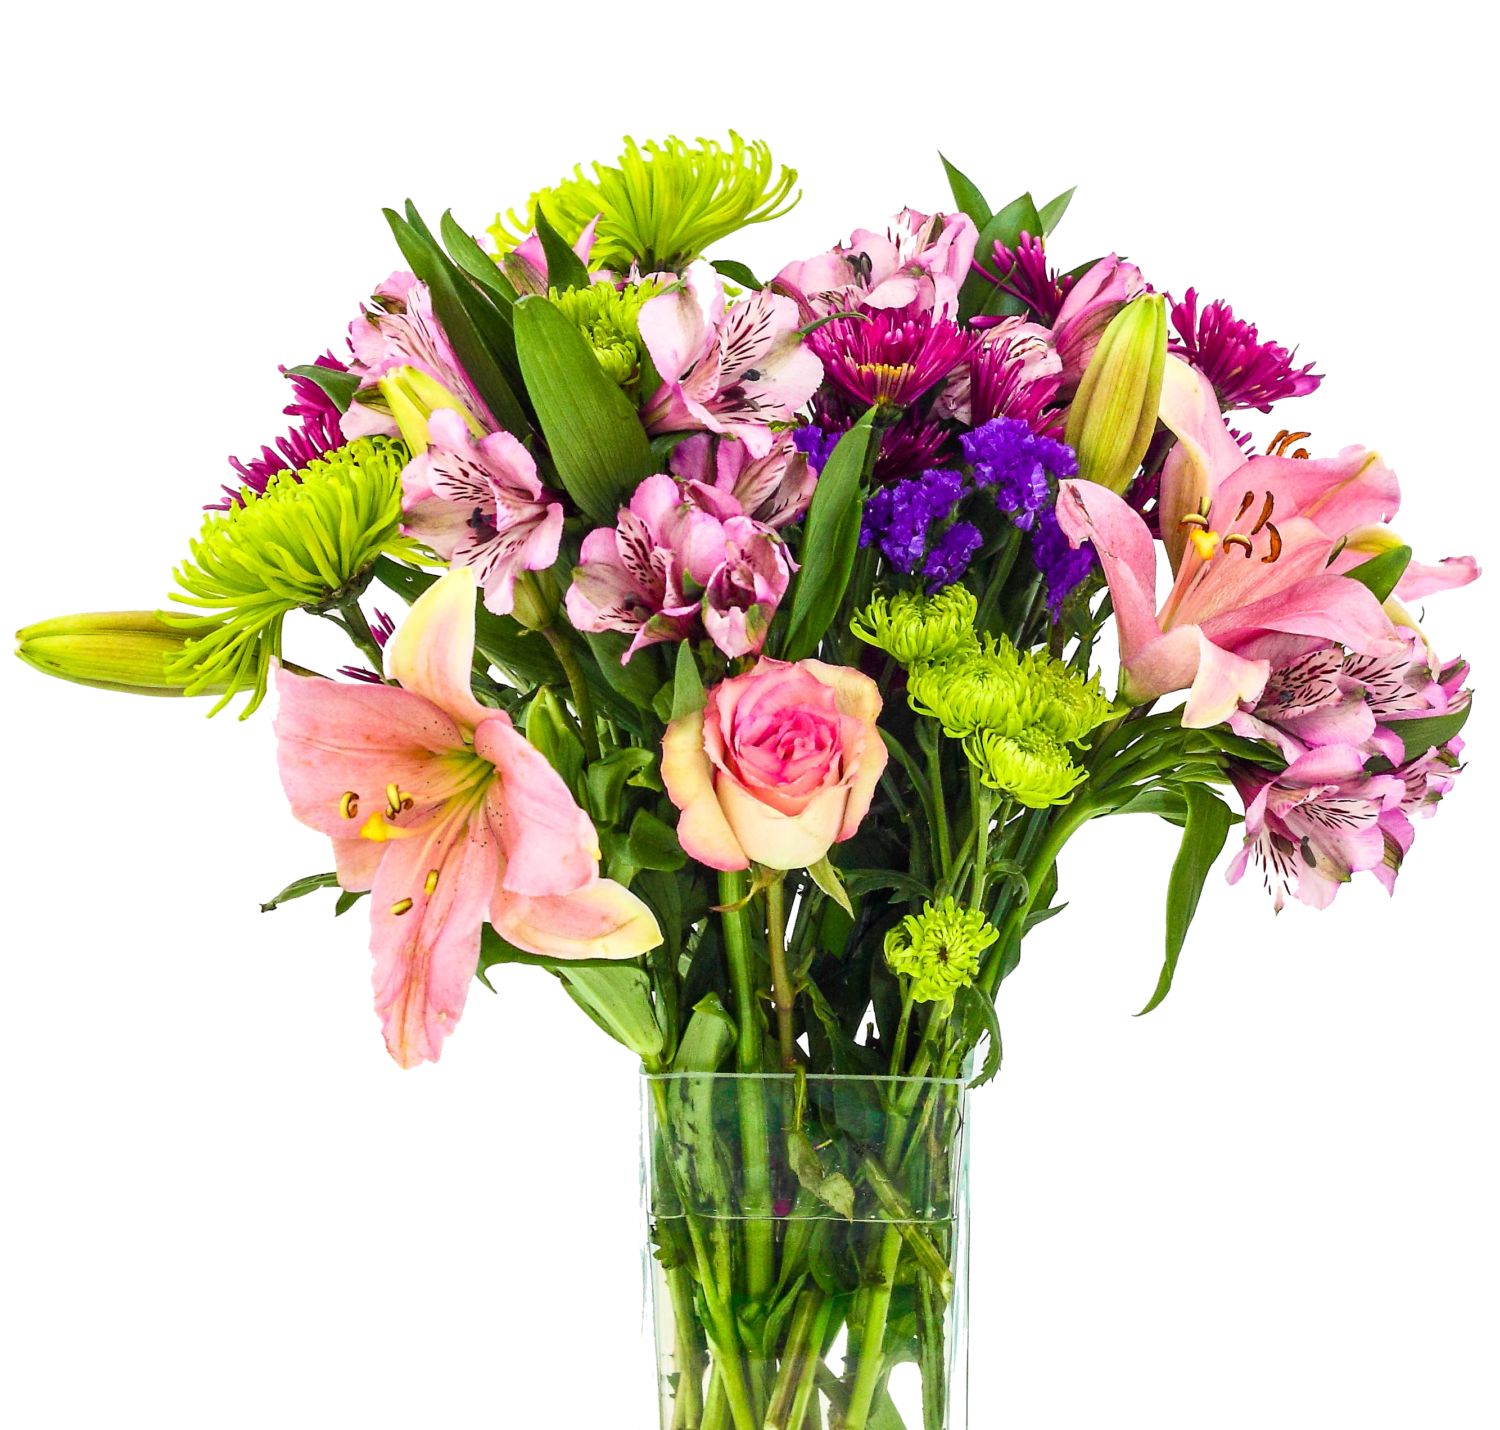 flower bouquet hugo floral hugo family marketplace #34079